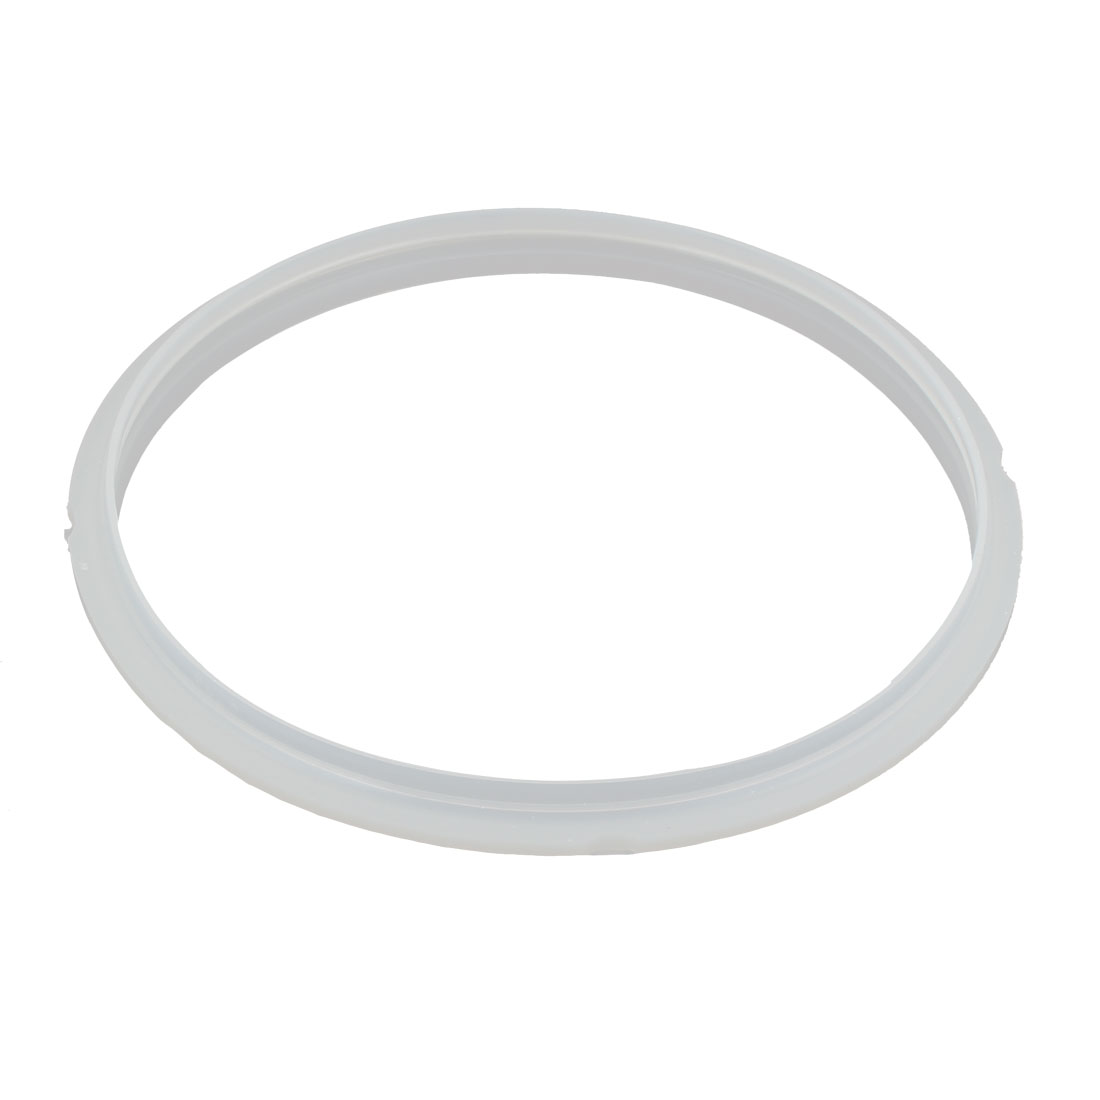 Kitchen Rubber Seal Sealing Ring Gasket 19cm Inner Dia for 3-4L Electric Pressure Cooker